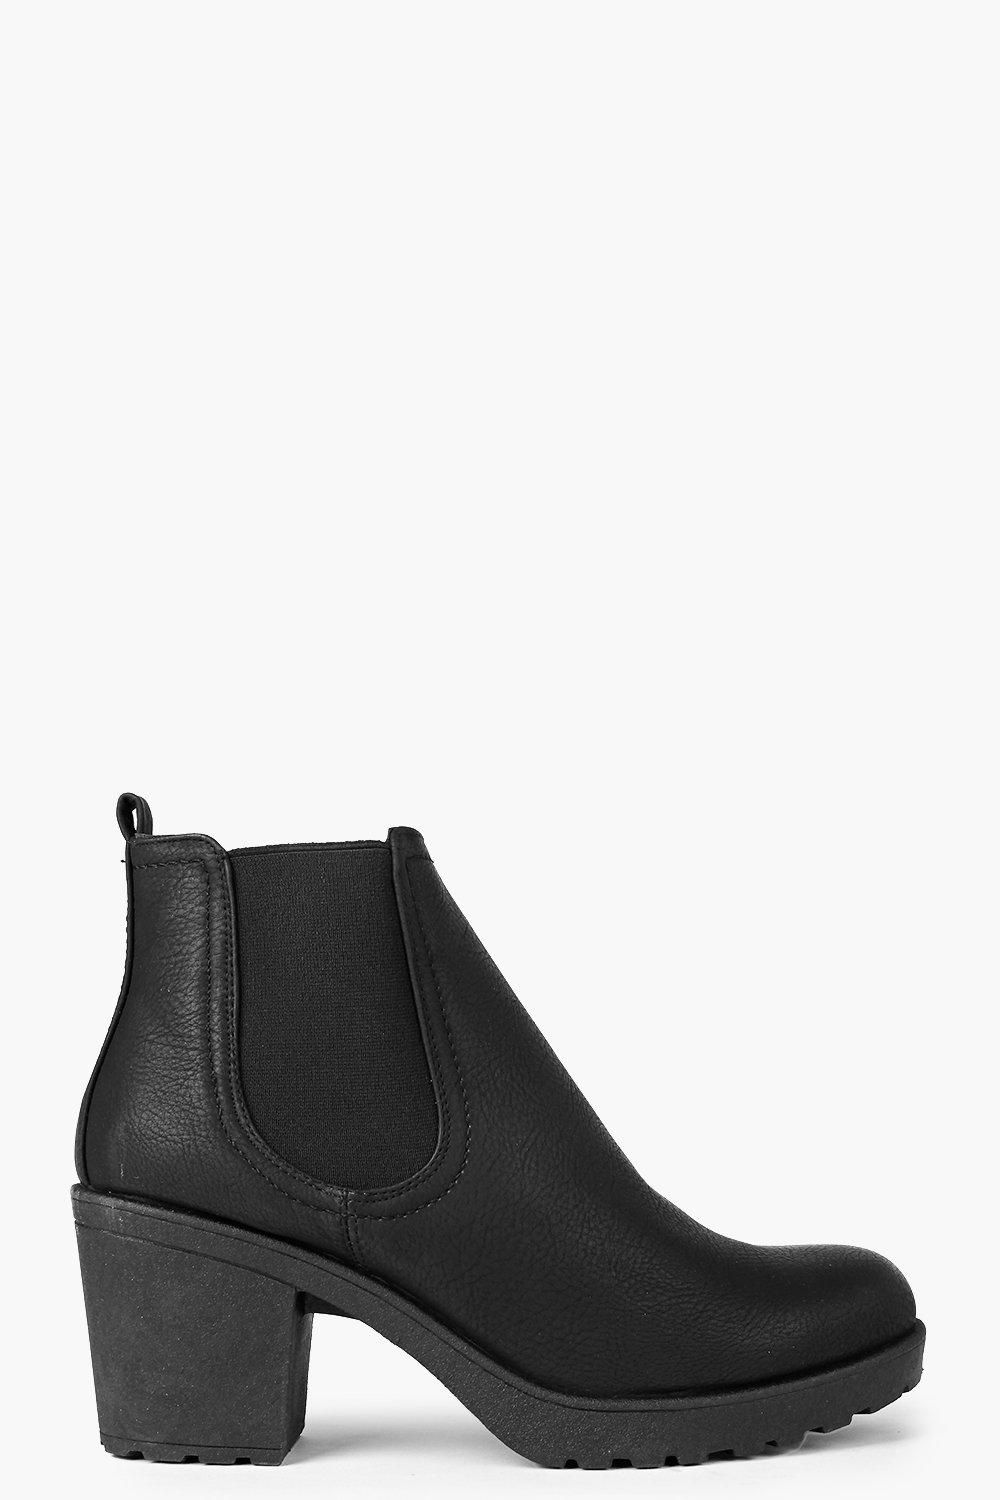 cb2717c381d Chunky Cleated Heel Chelsea Boots | Shoes | Chelsea boots, Boots, Shoes